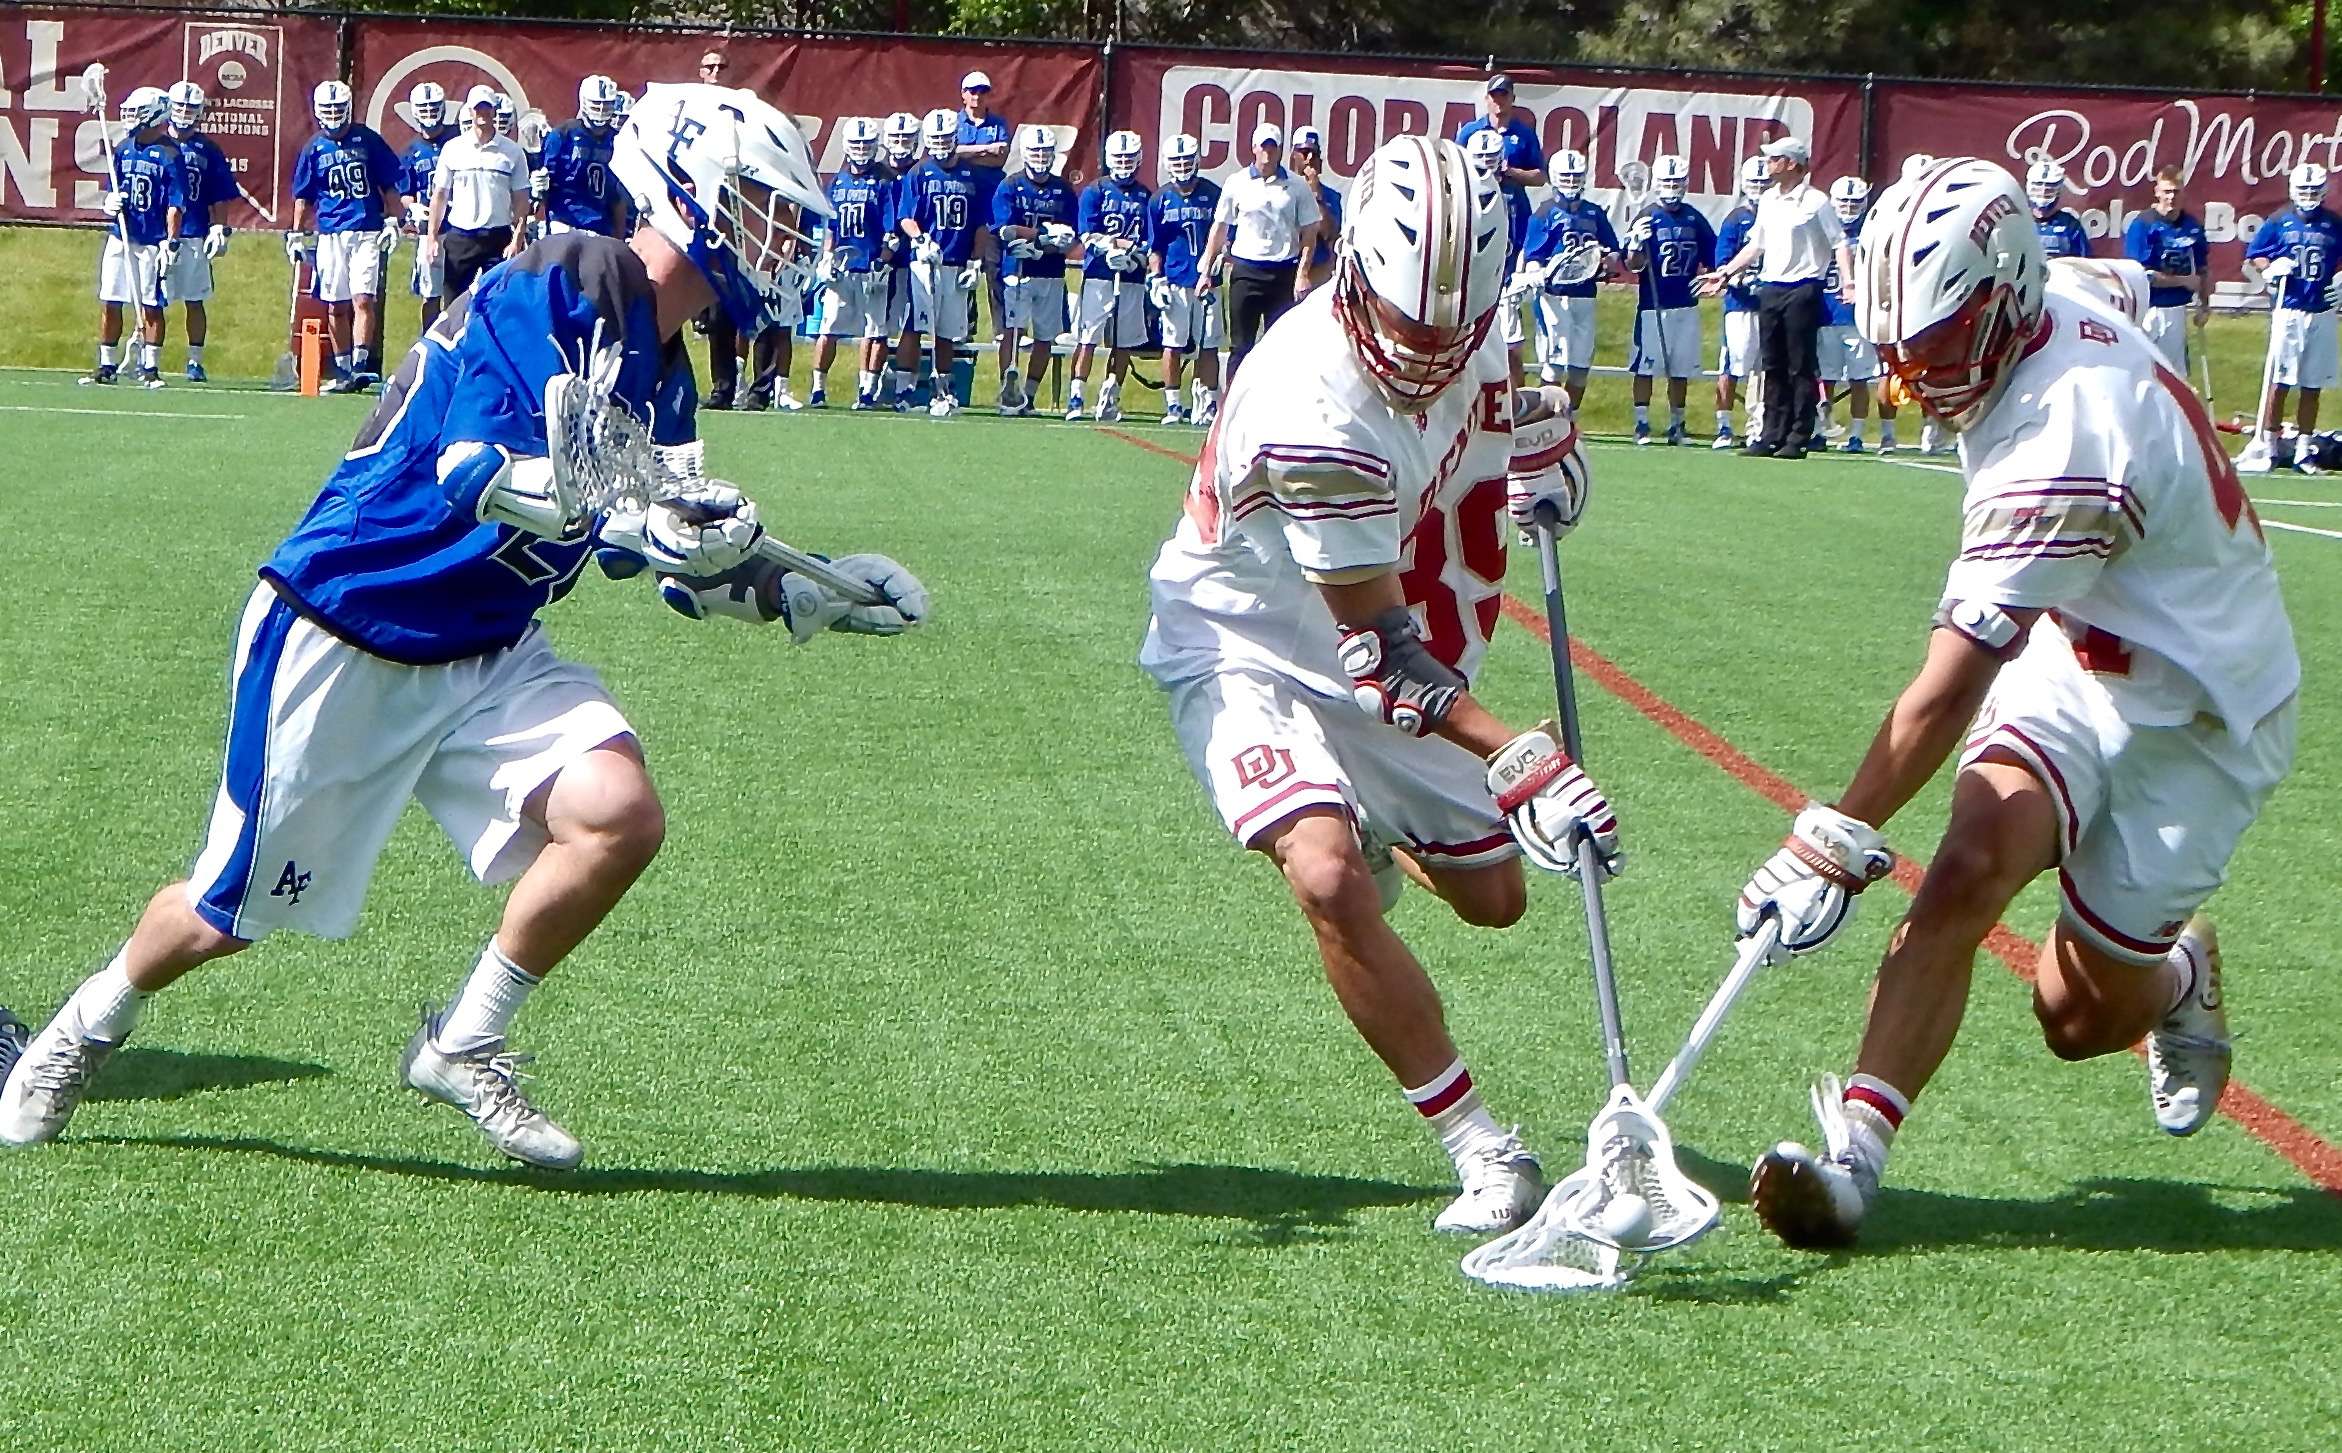 Denver Pioneers vs Air Force Falcons in NCAA D1 action. (Photo credit: Ian Neadle)